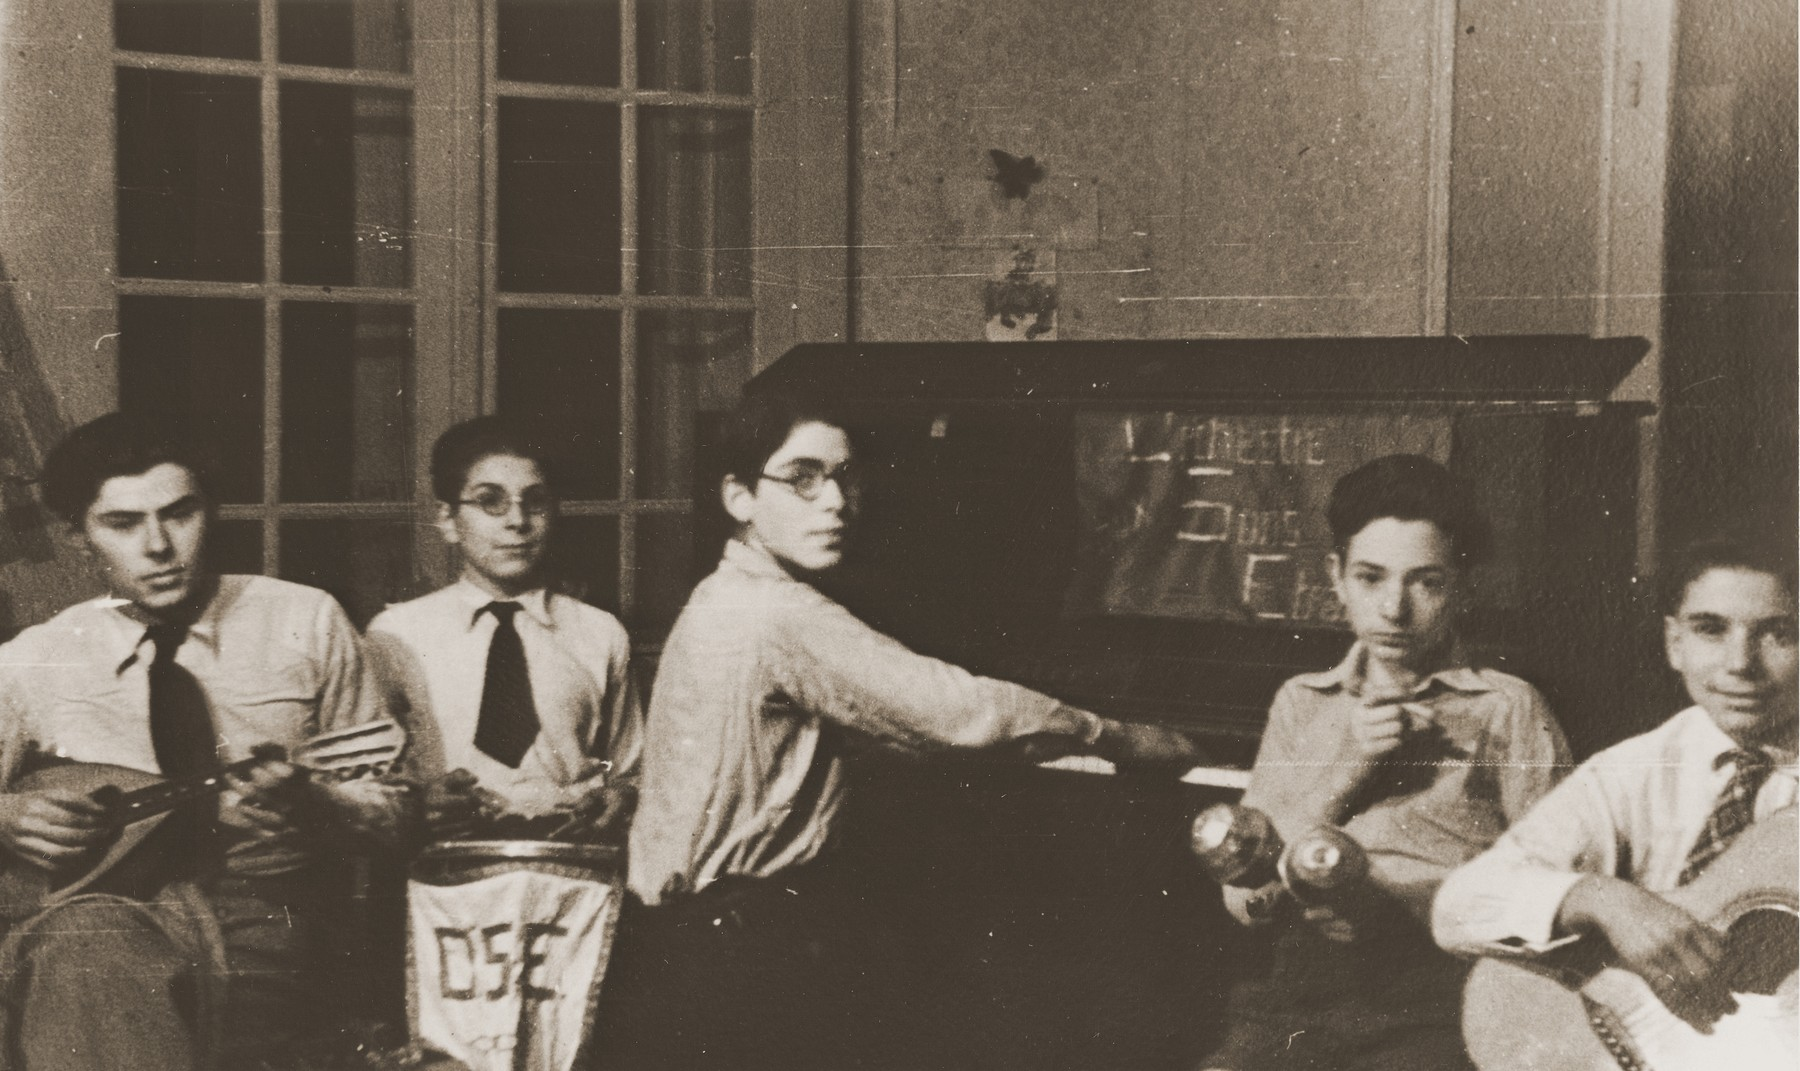 Members of a youth orchestra perform at the Château de Chabannes children's home.  The home was sponsored by the OSE (Oeuvre de secours aux Enfants).  Pictured from left to right are Marjan Szturm, Armand Chochenbaum, Walter Herzig, Gérard Alexander and Peter Marcuse.